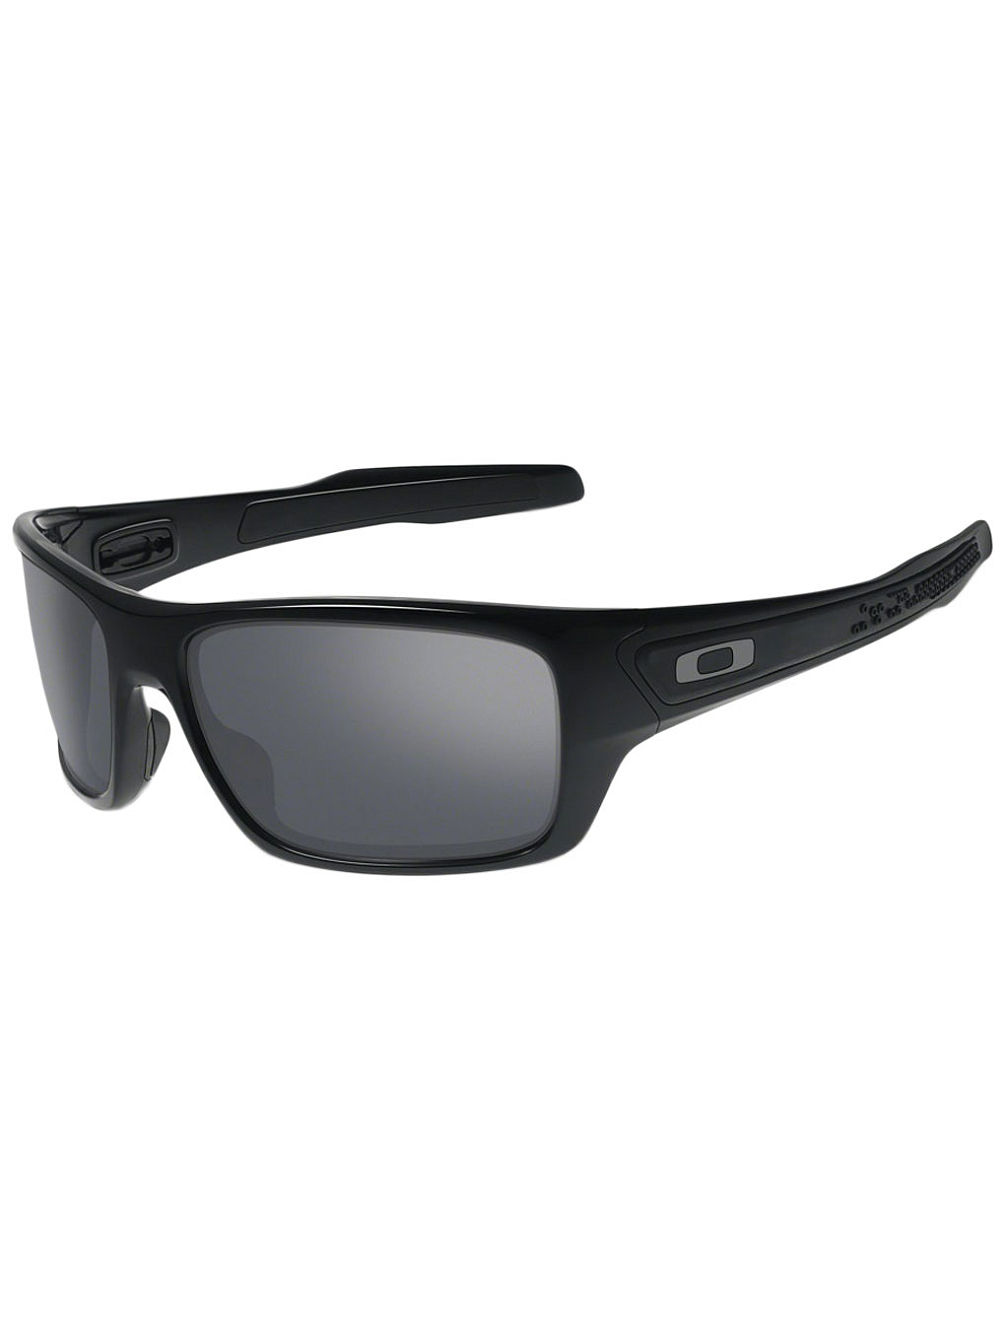 Turbine Polished Black Sonnenbrille